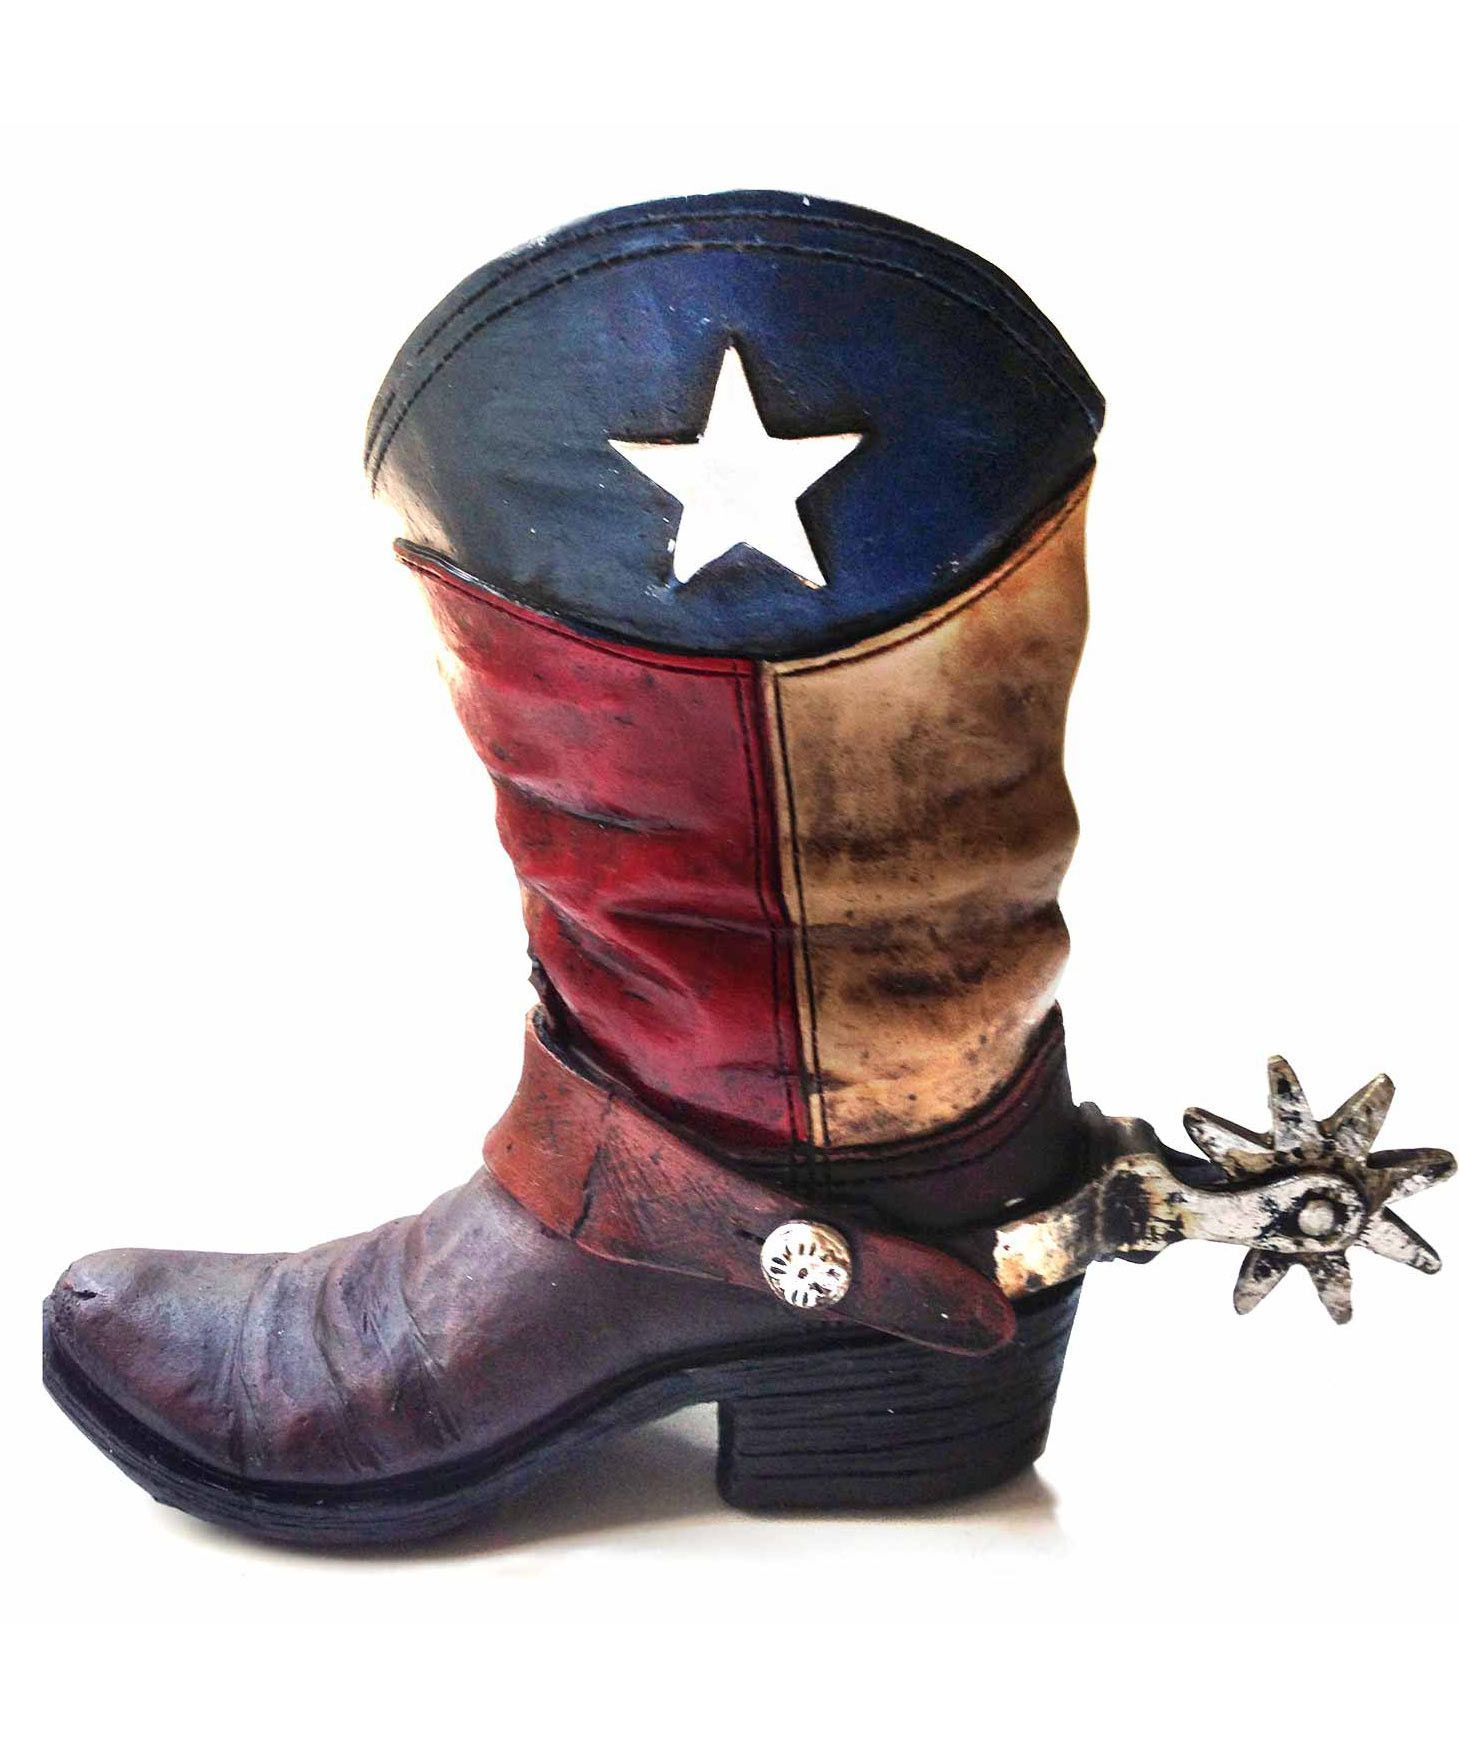 Texas Lone Star Cowboy Boot with Spur Piggy Bank | Boots